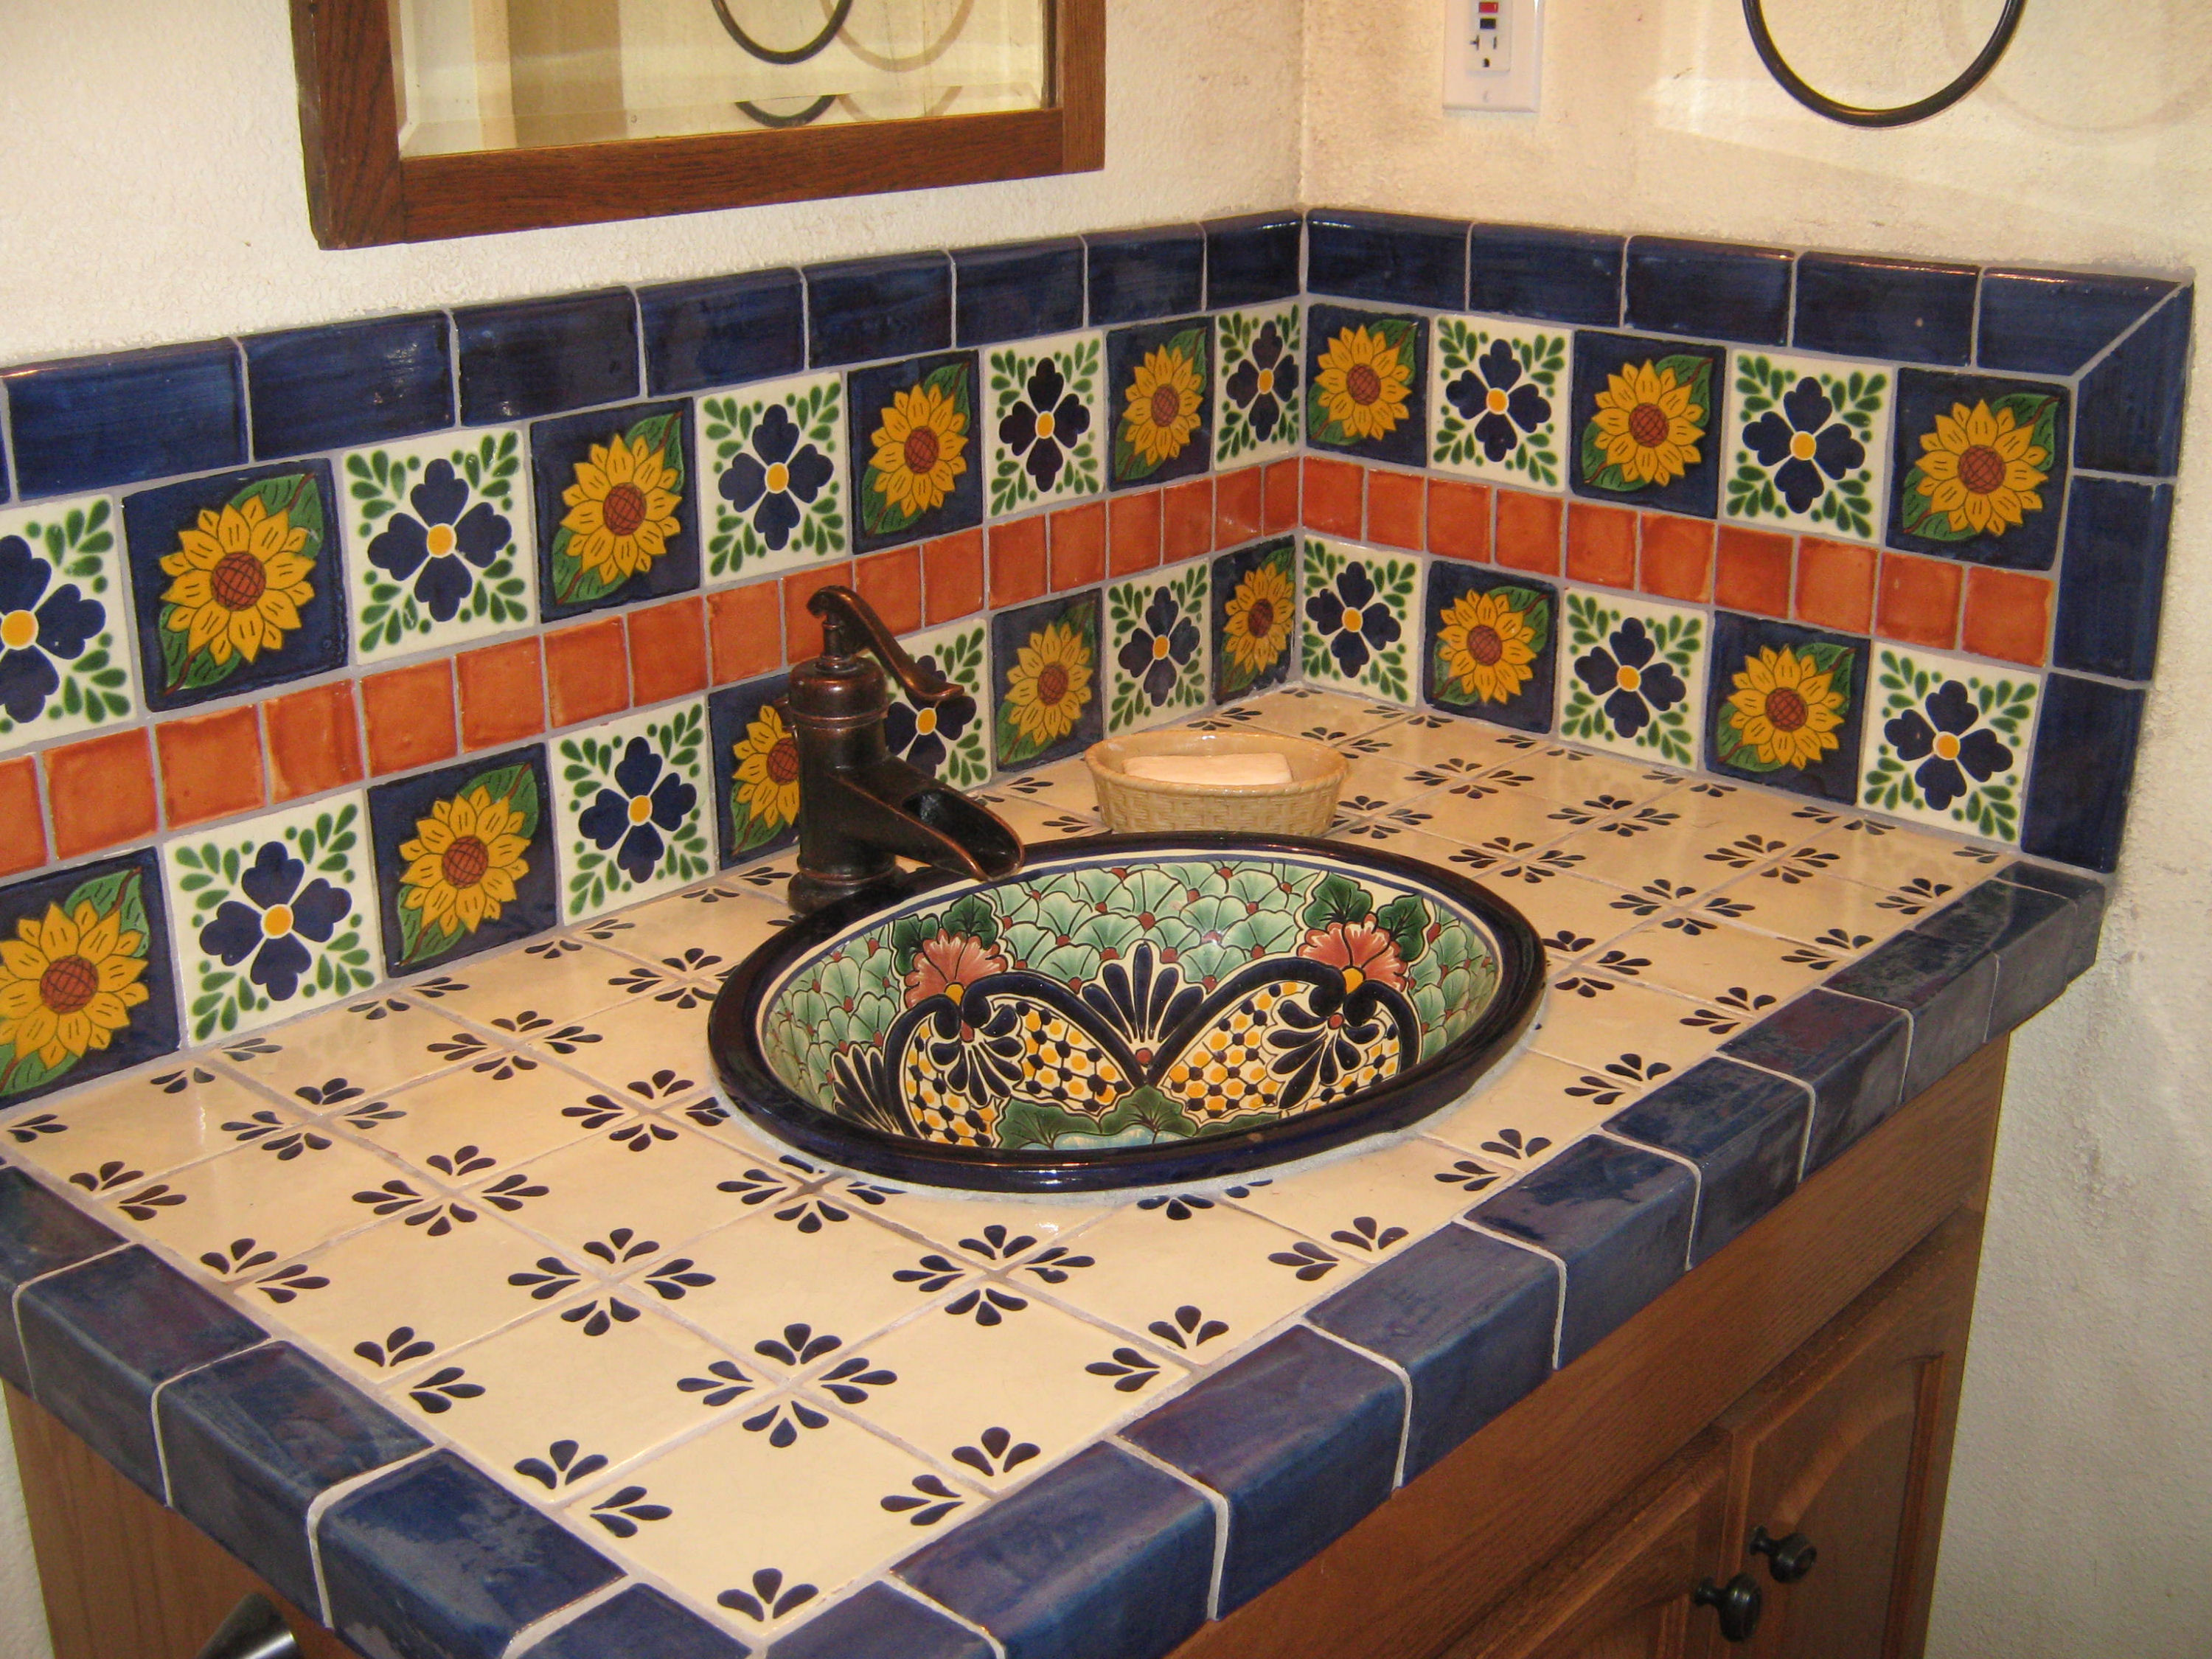 Bathroom Design Mexican Tile : Mexicans home decor art and crafts